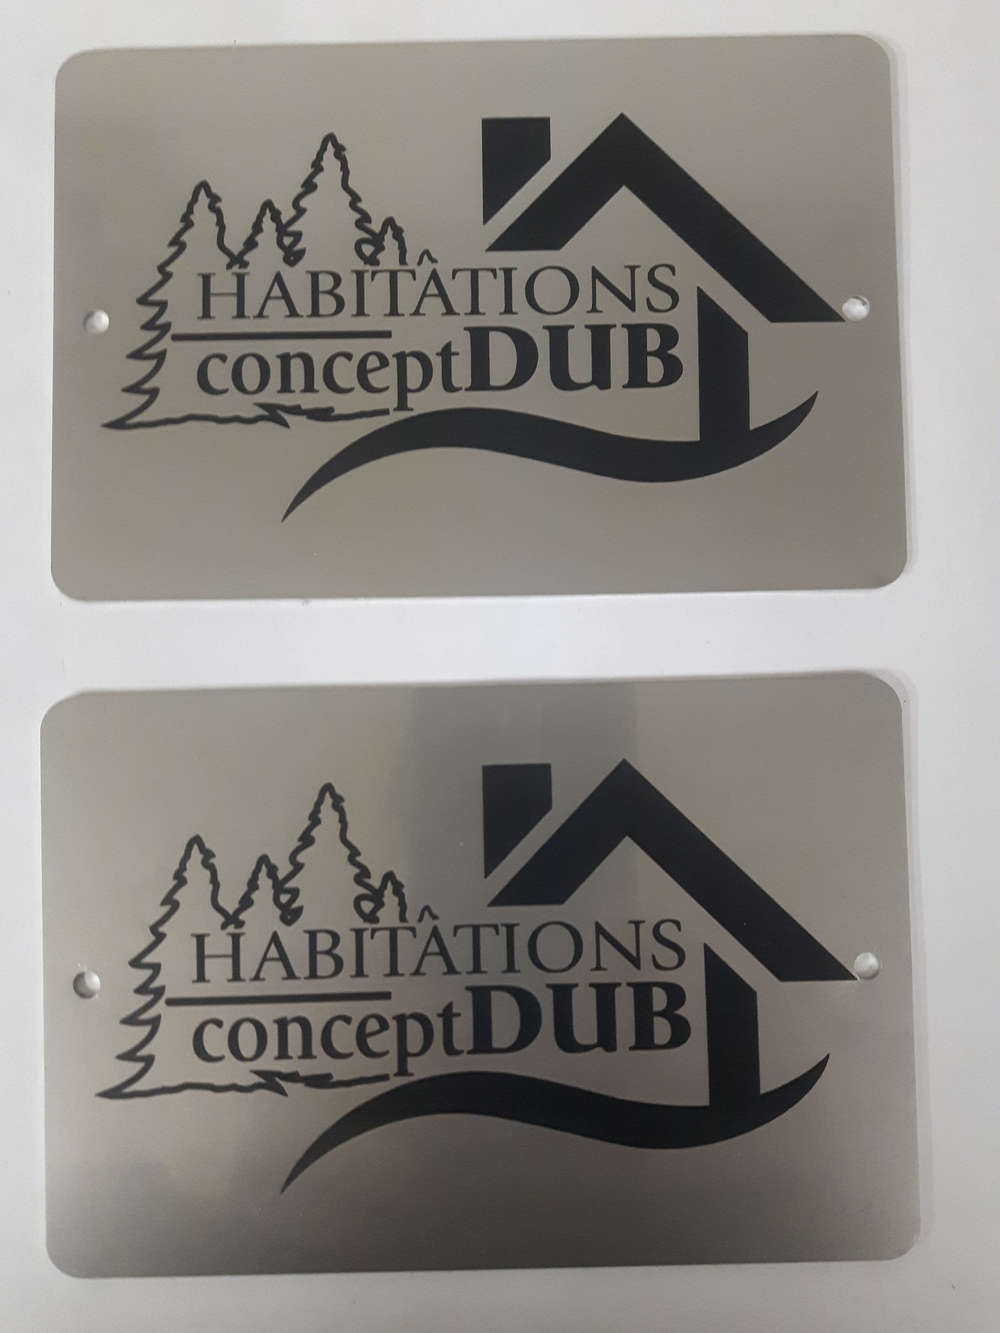 Laser marked stainless steel tags